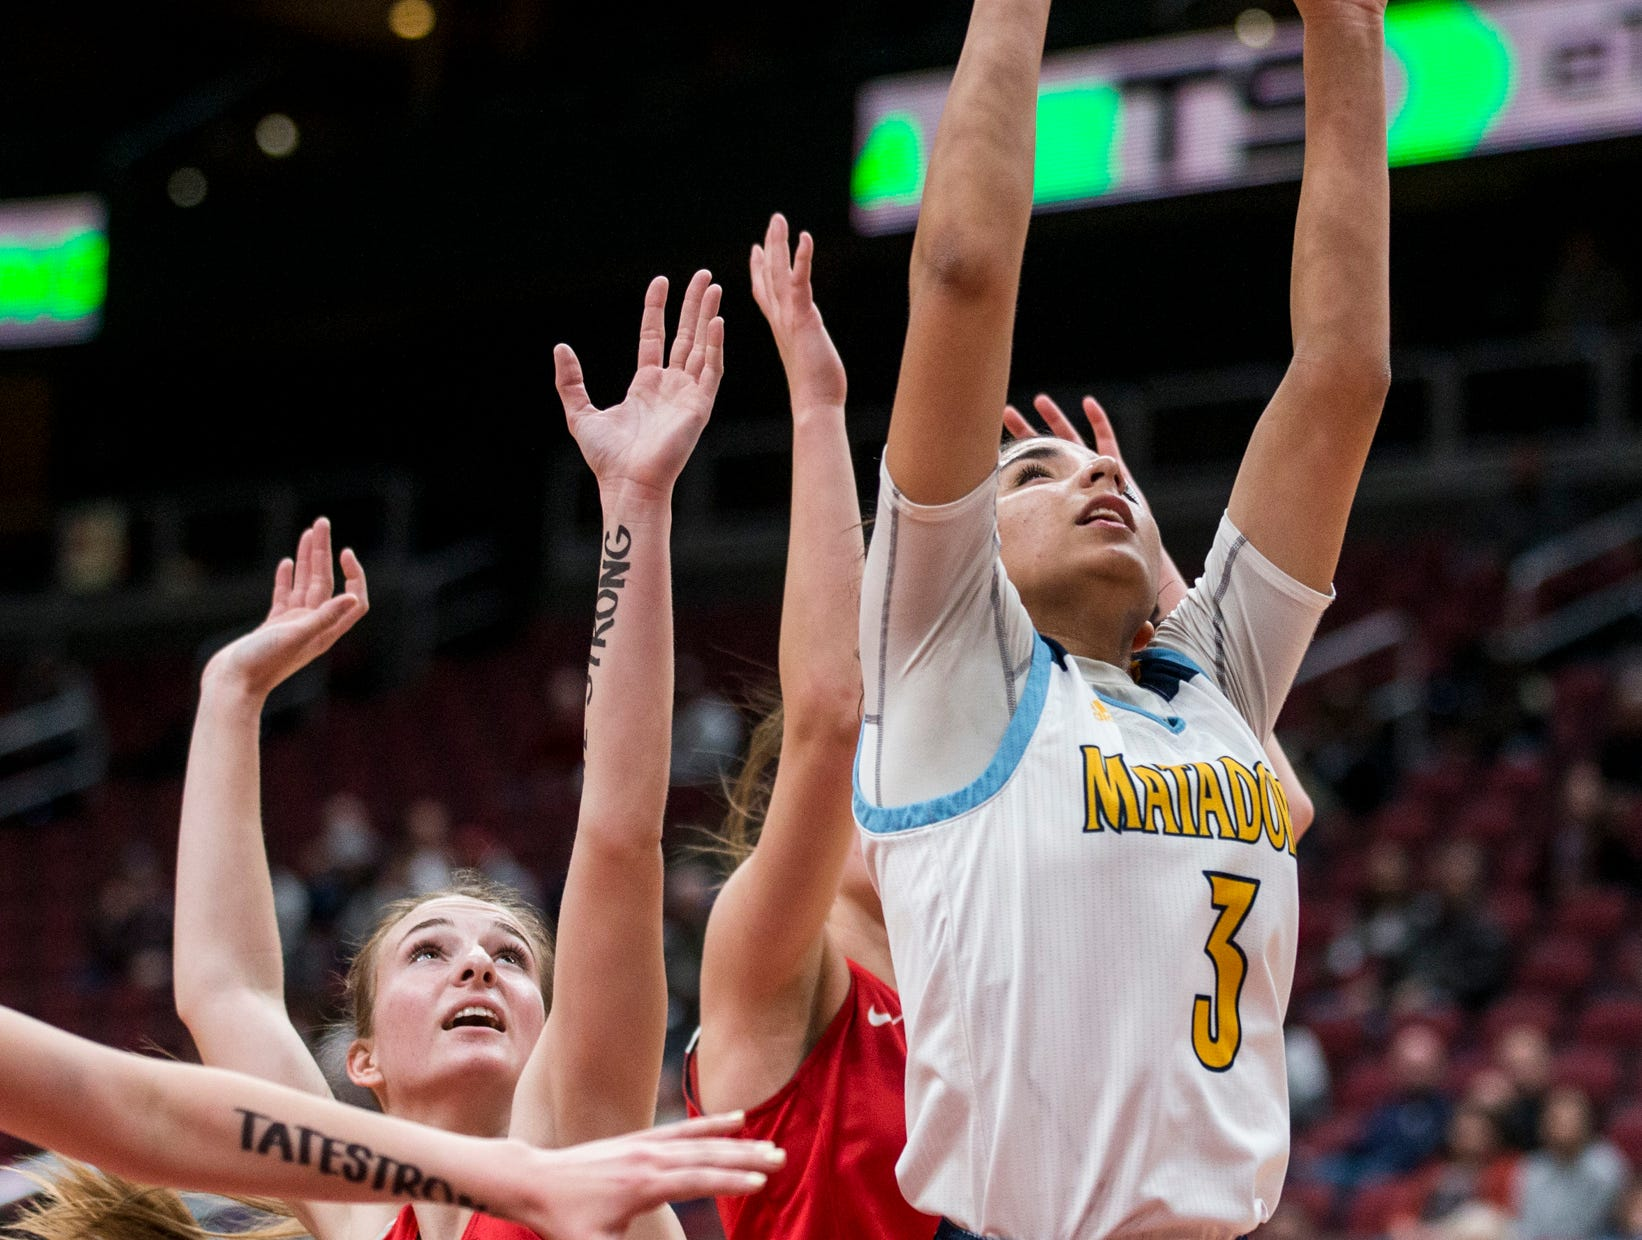 Shadow Mountain's Zhane Jordan attempts a layup against Seton Catholic during the 4A girls basketball championship on Saturday, Feb. 23, 2019, at Gila River Arena in Glendale, Ariz.